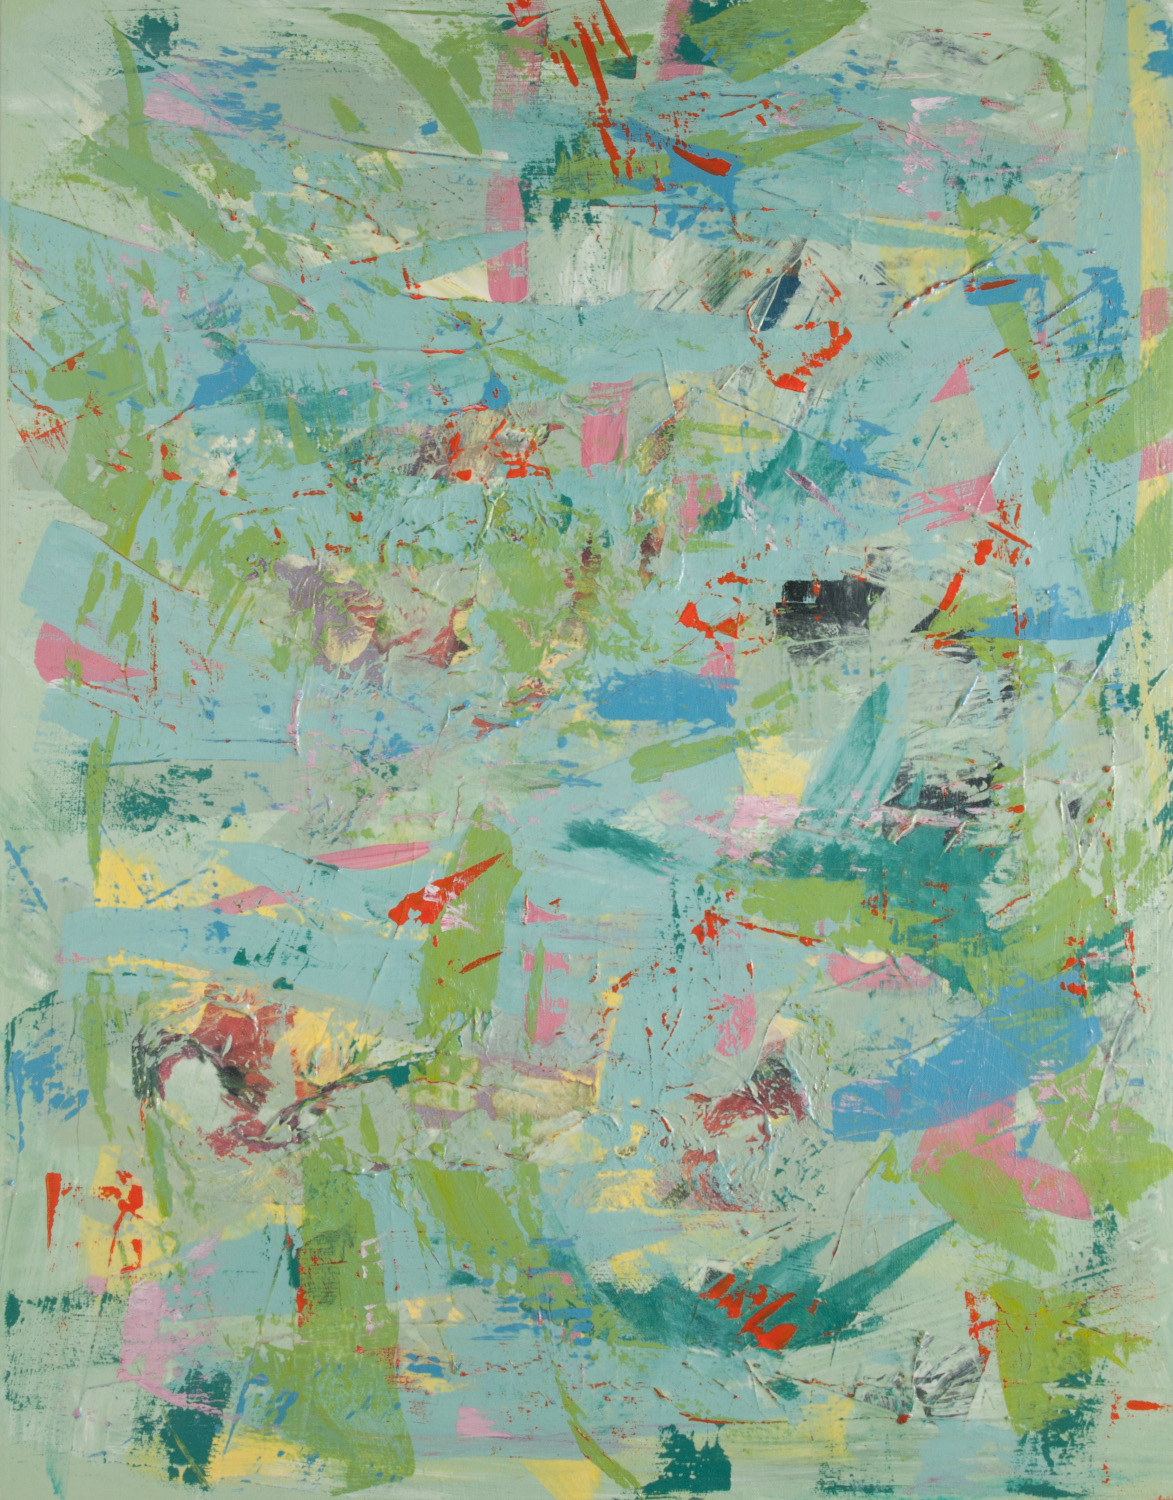 green, blue, yellow, pink abstract painting